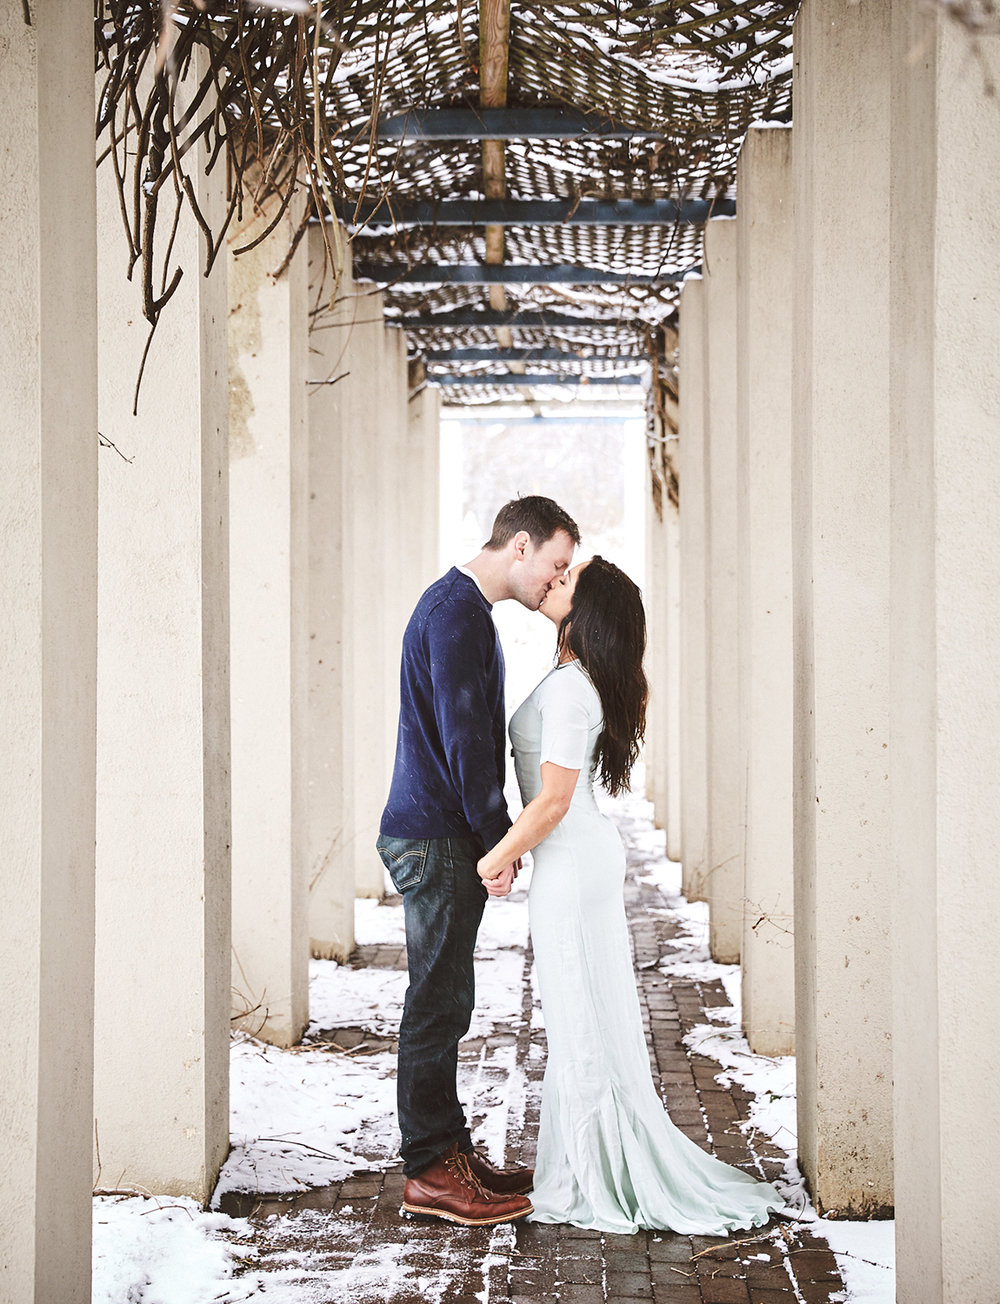 170114_LibertyStateParkEngagement_WinterEngagementPhotography_By_BriJohnsonWeddings0023.jpg